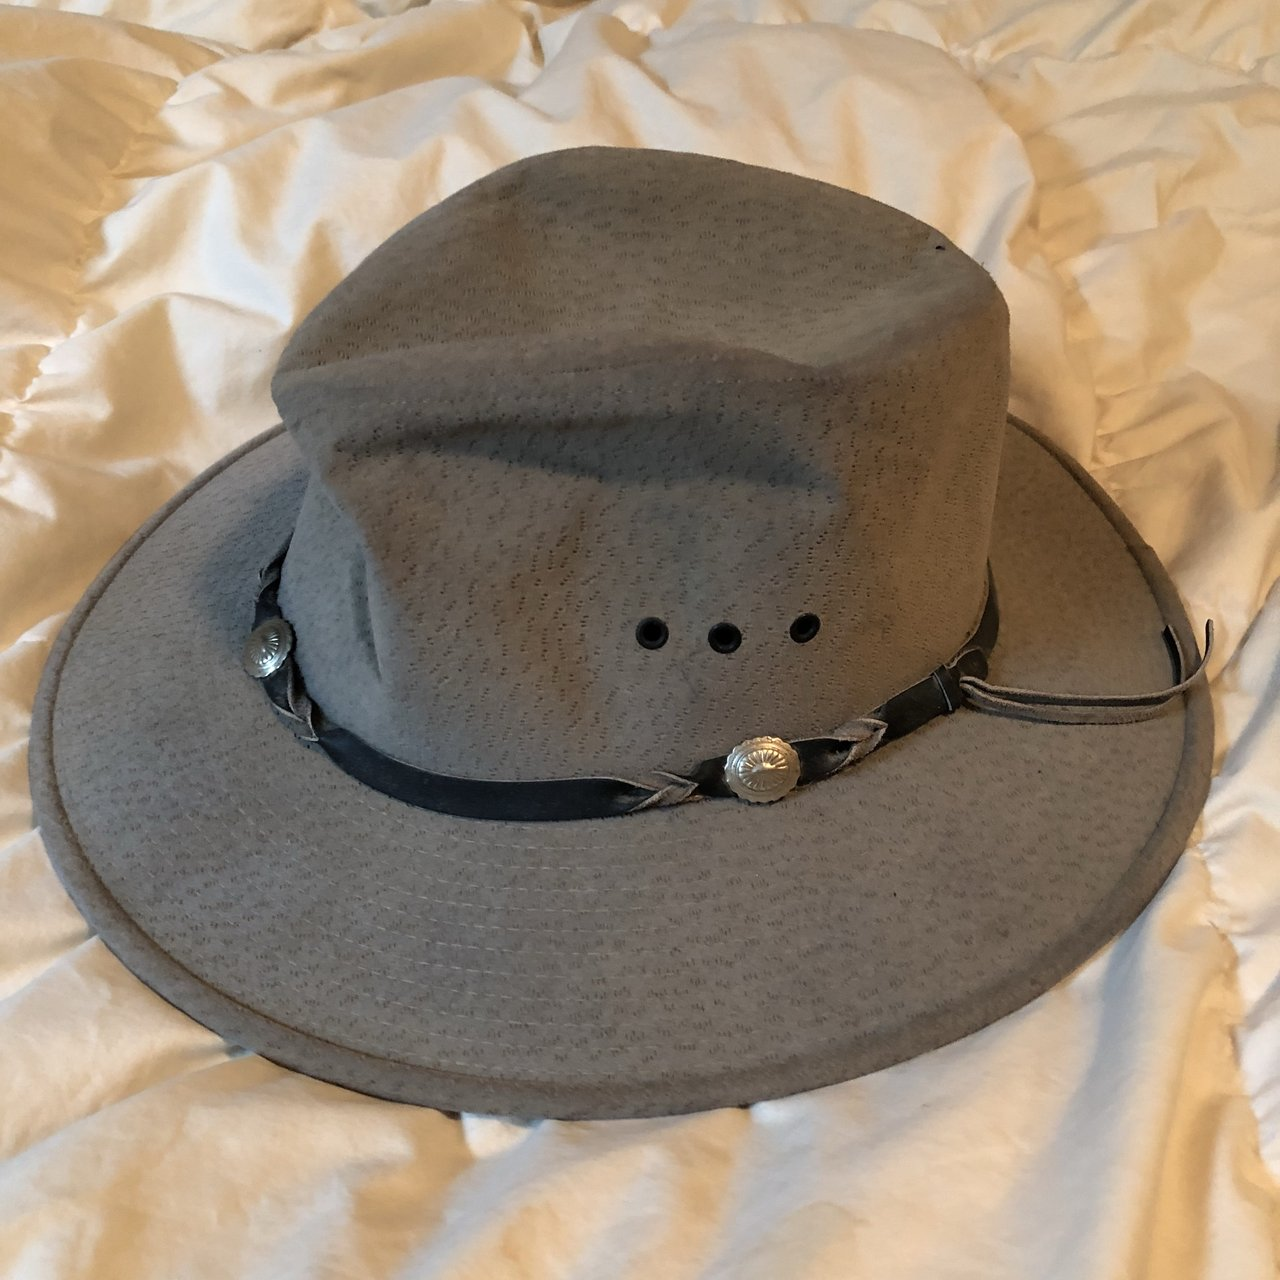 2d7db799119 Bailey vintage sun style cowboy hat This fit when I had hair - Depop